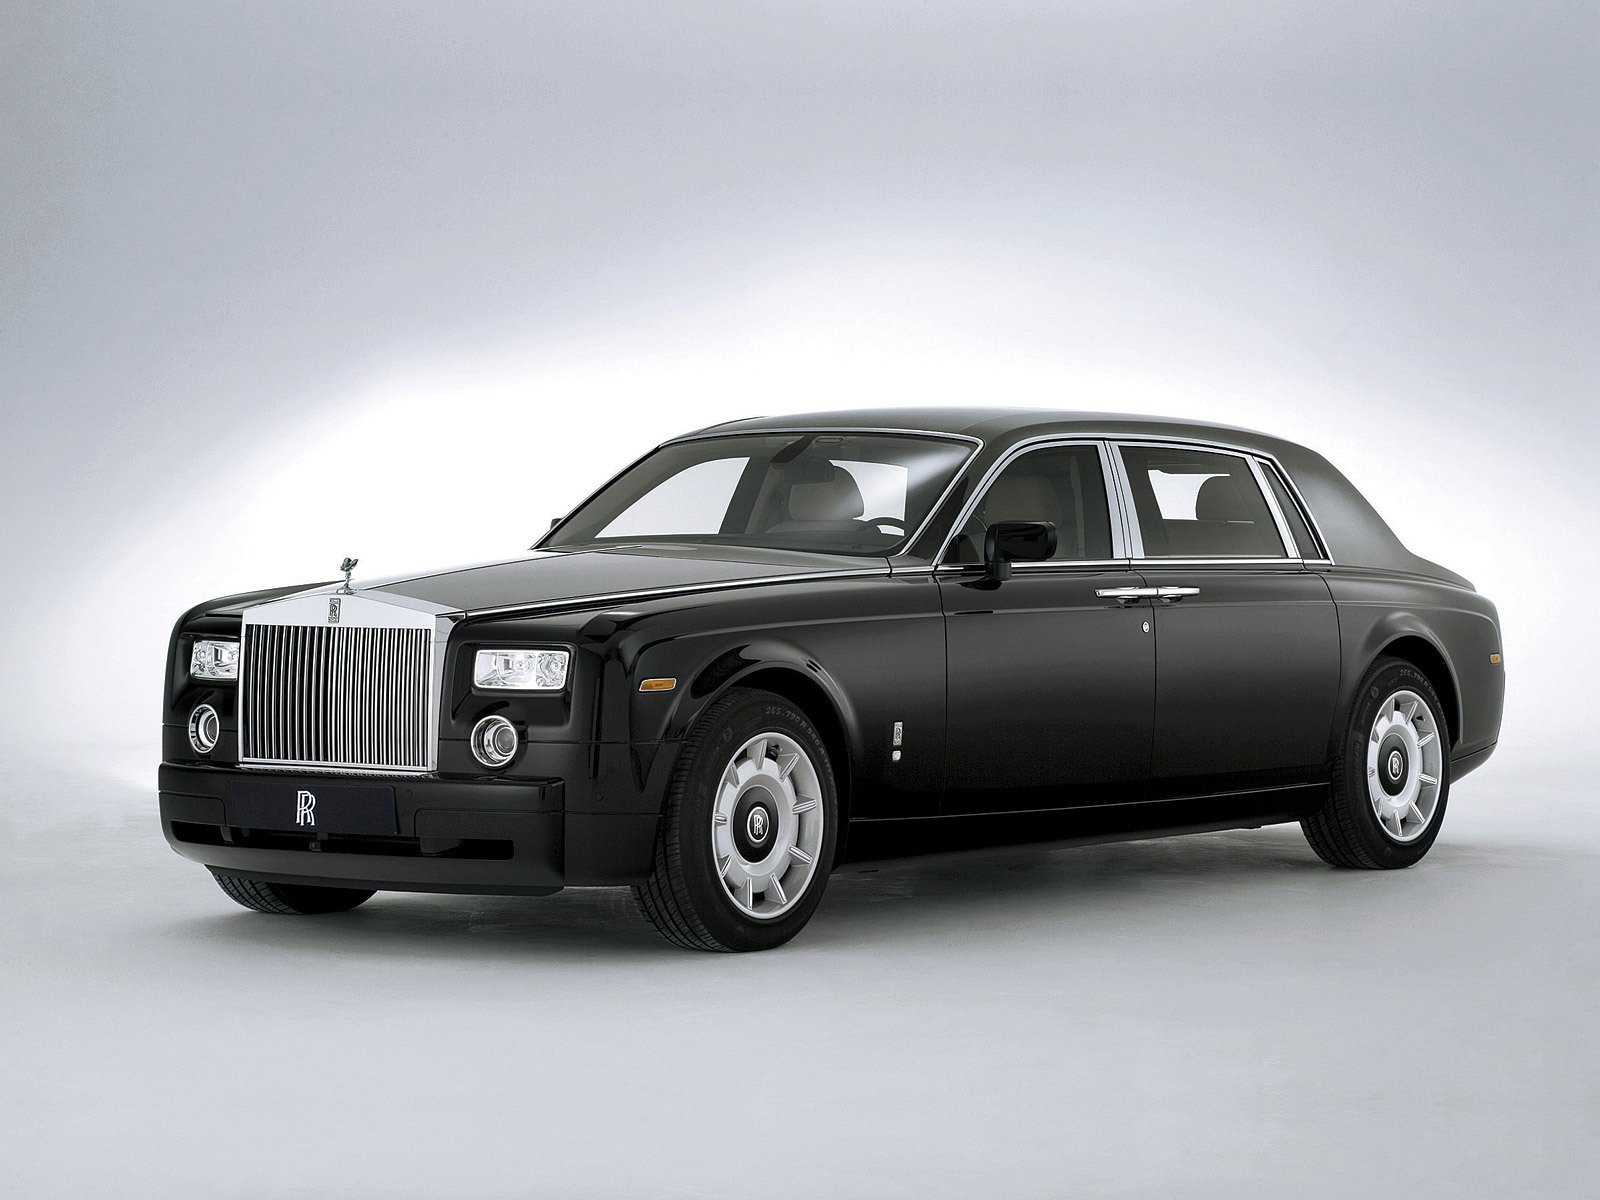 Ilona Wallpapers Royal Royals Car Wallpapers Latest 2011 Hd Wallpapers